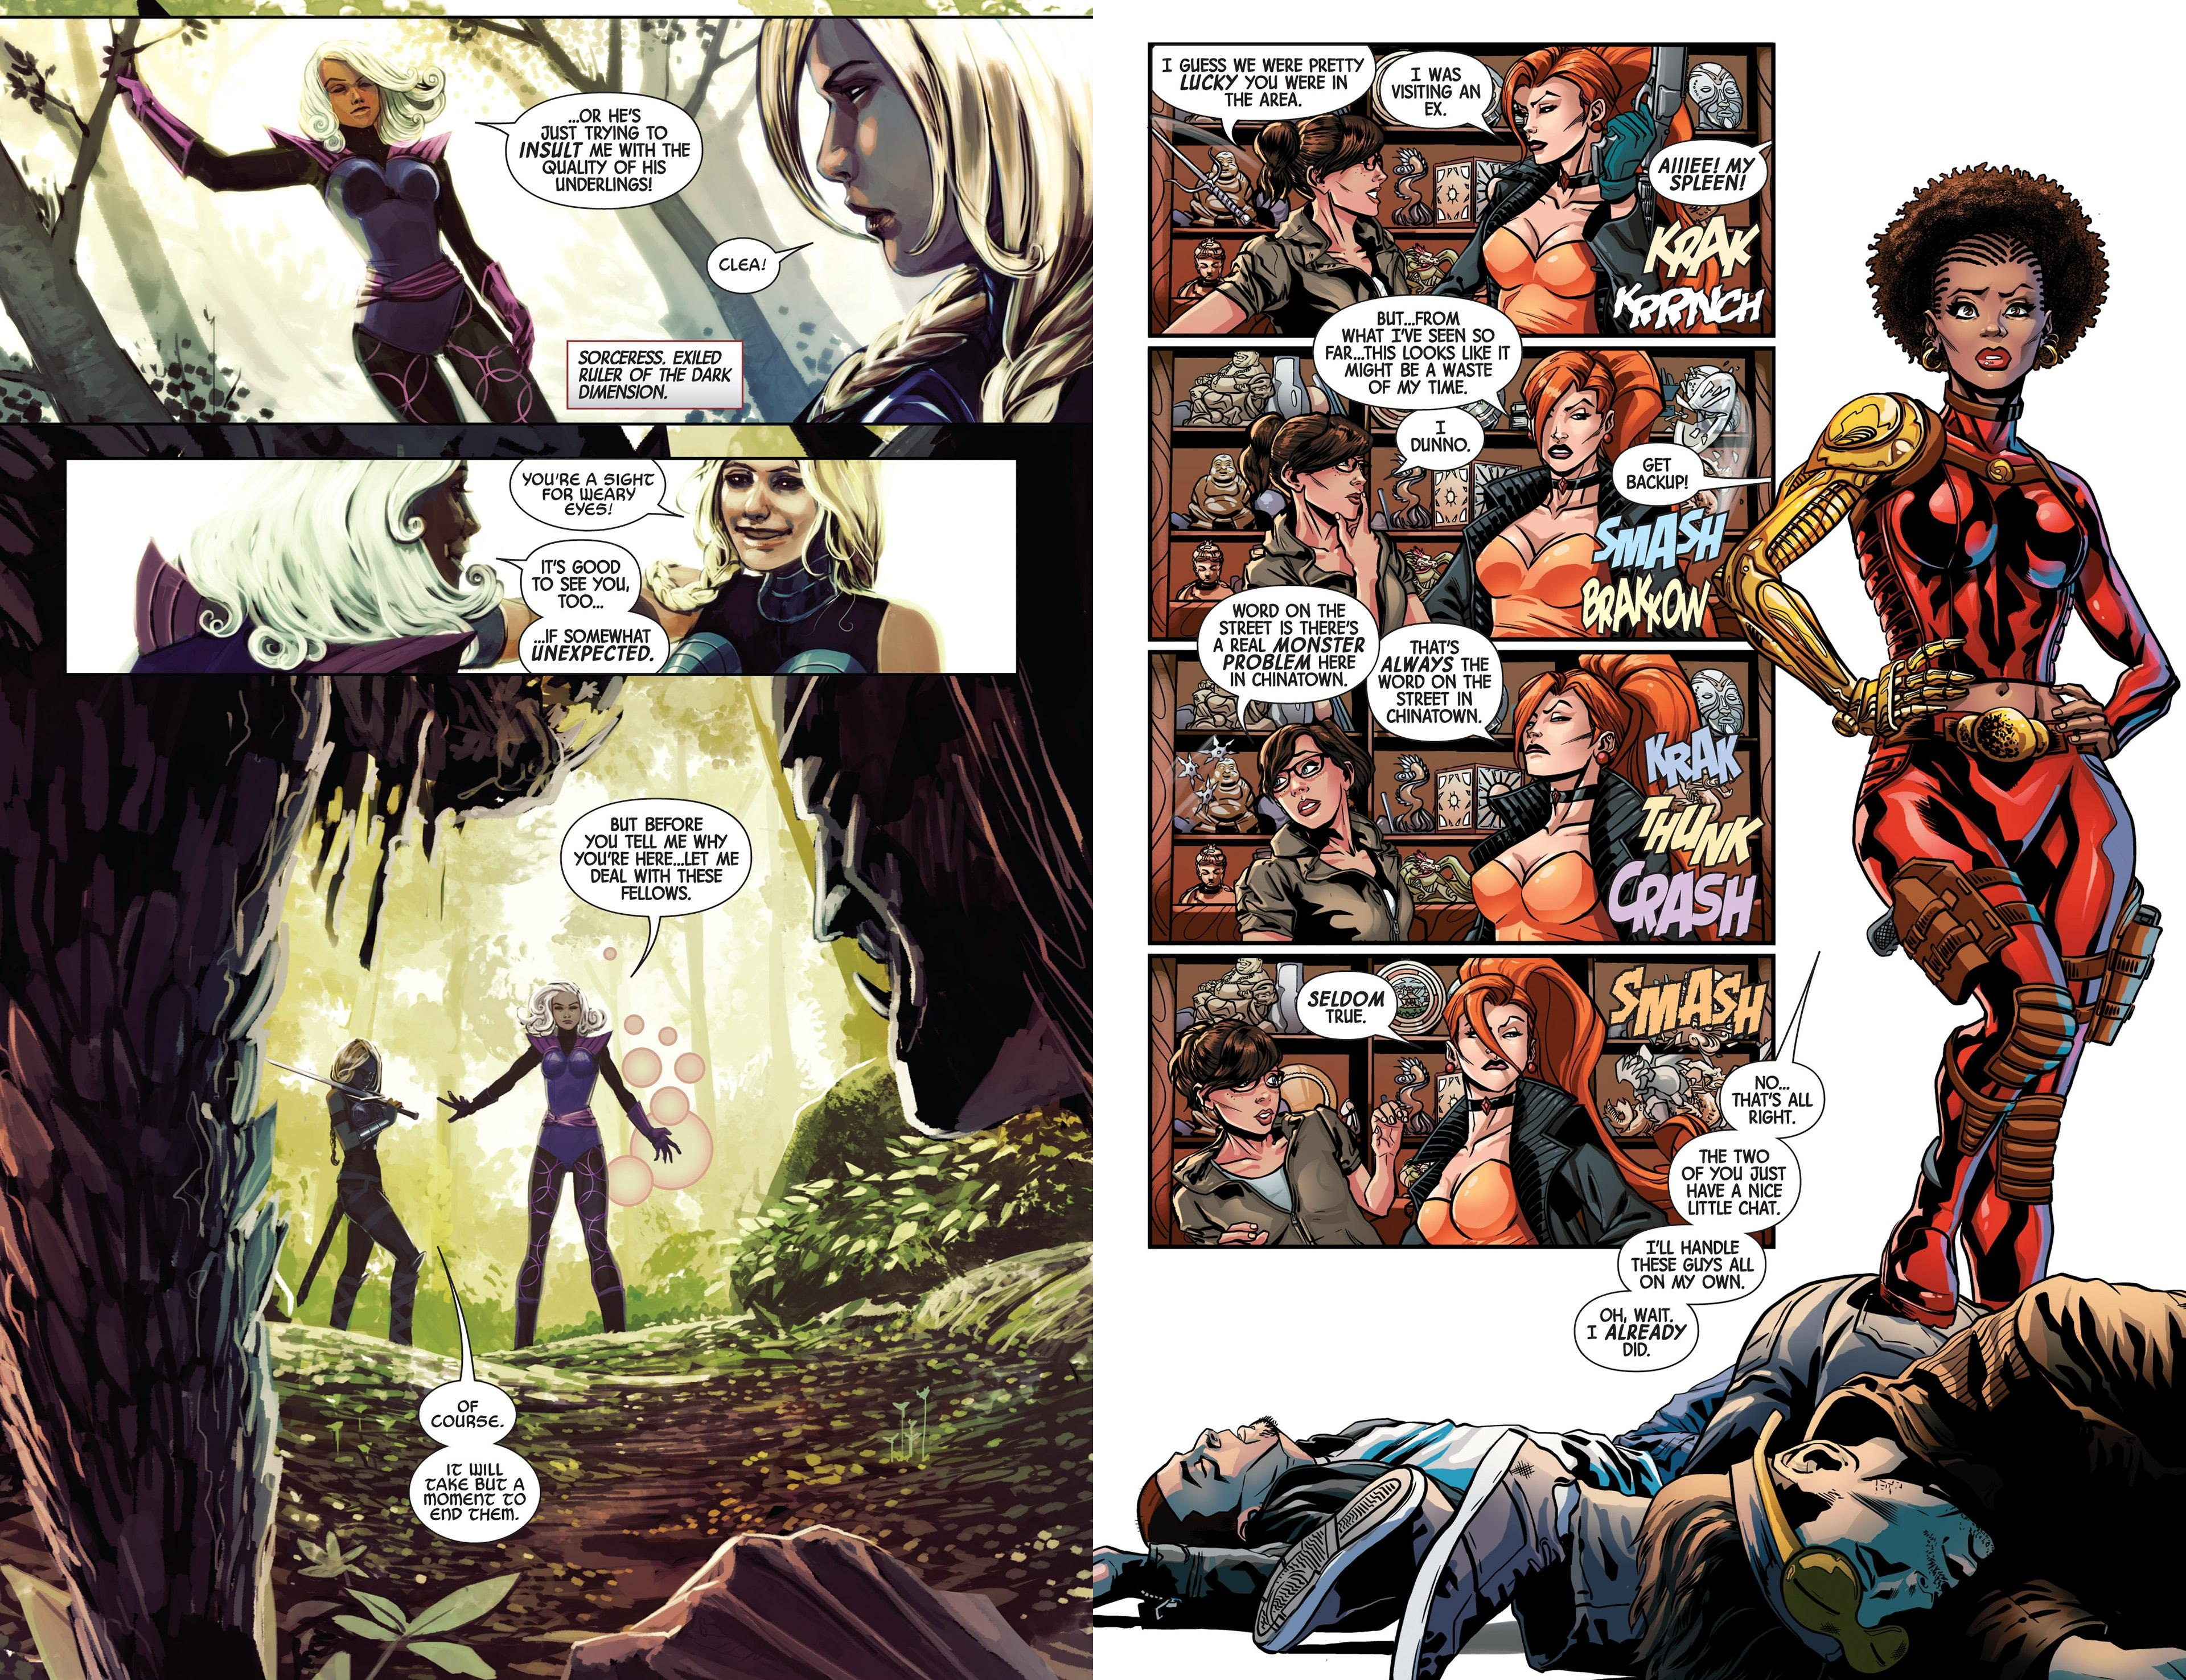 Fearless Defenders The Most Fabulous Fighting Team of All review